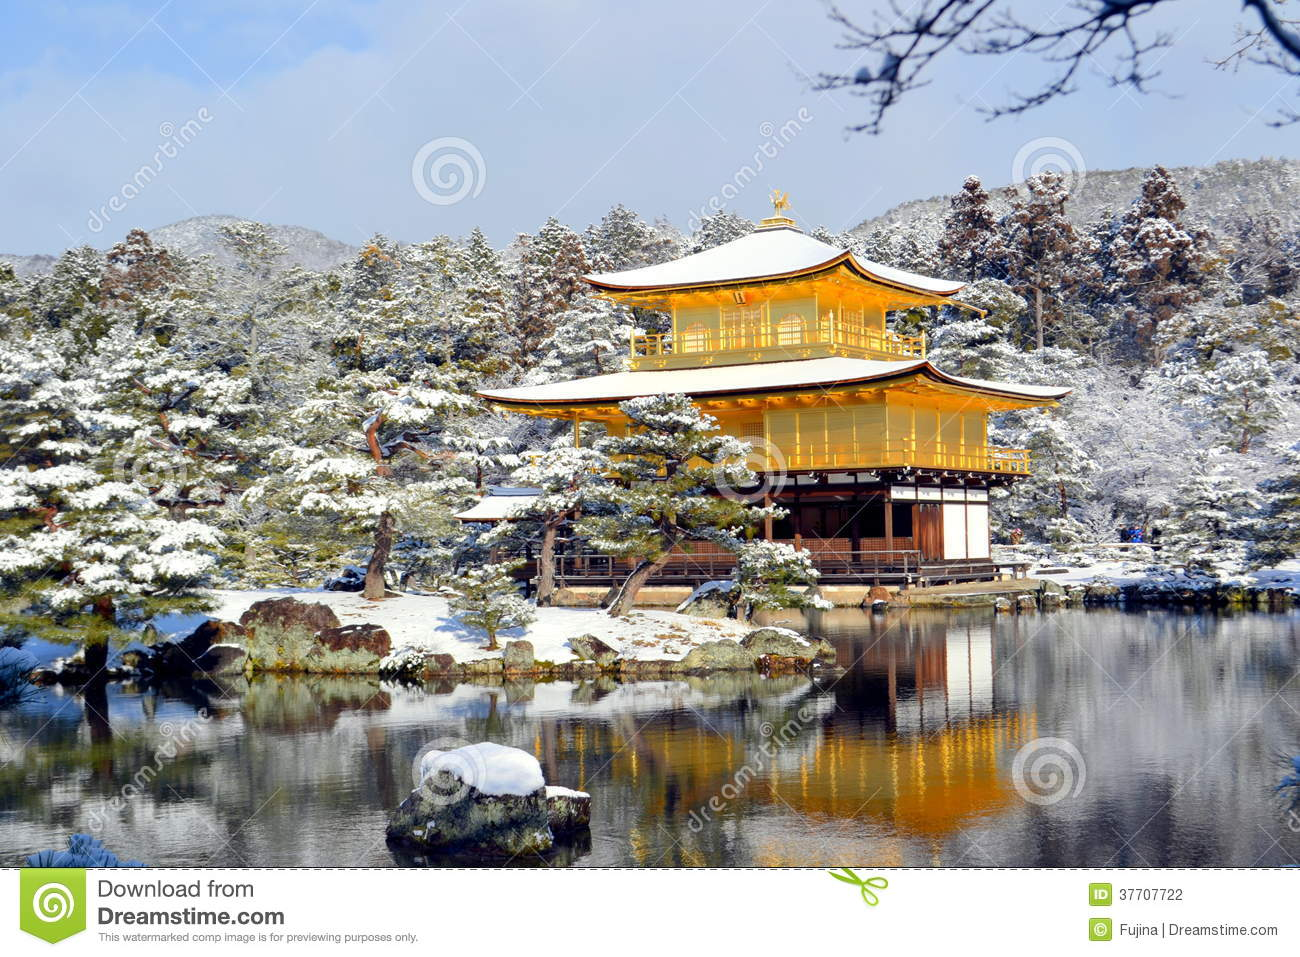 ... taken in a very beautiful snow day at Golden temple in Kyoto, Japan